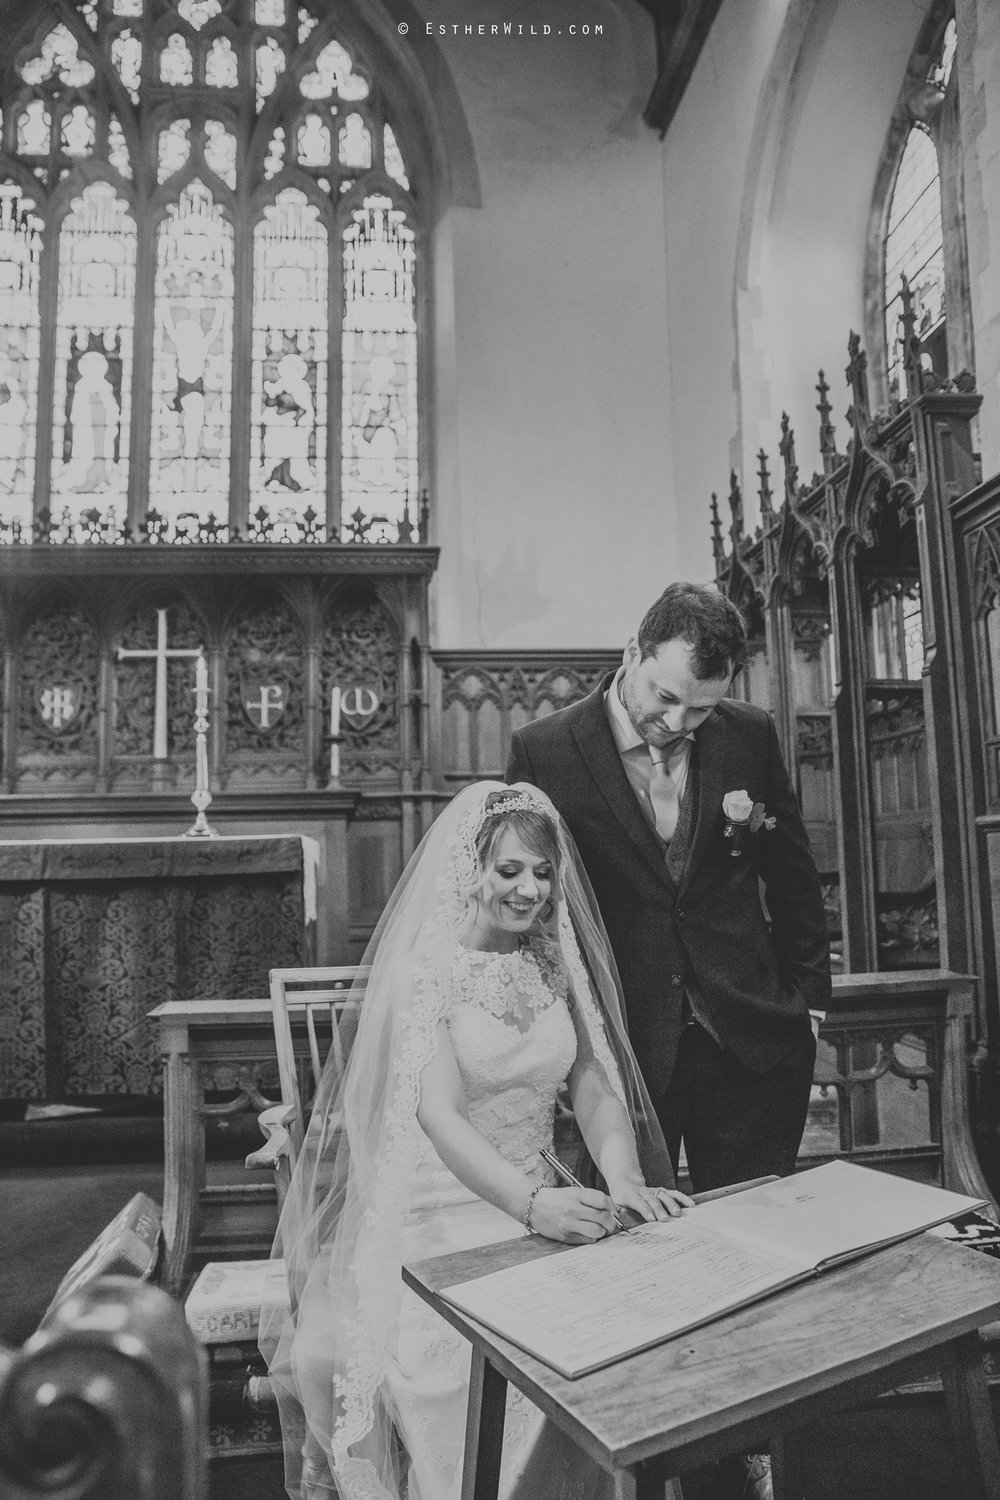 Wedding_Photography_Diss_Gawdy_Hall_Redenhall_Church_Norfolk_Winter_Esther_Wild_Copyright_IMG_1306-2.jpg